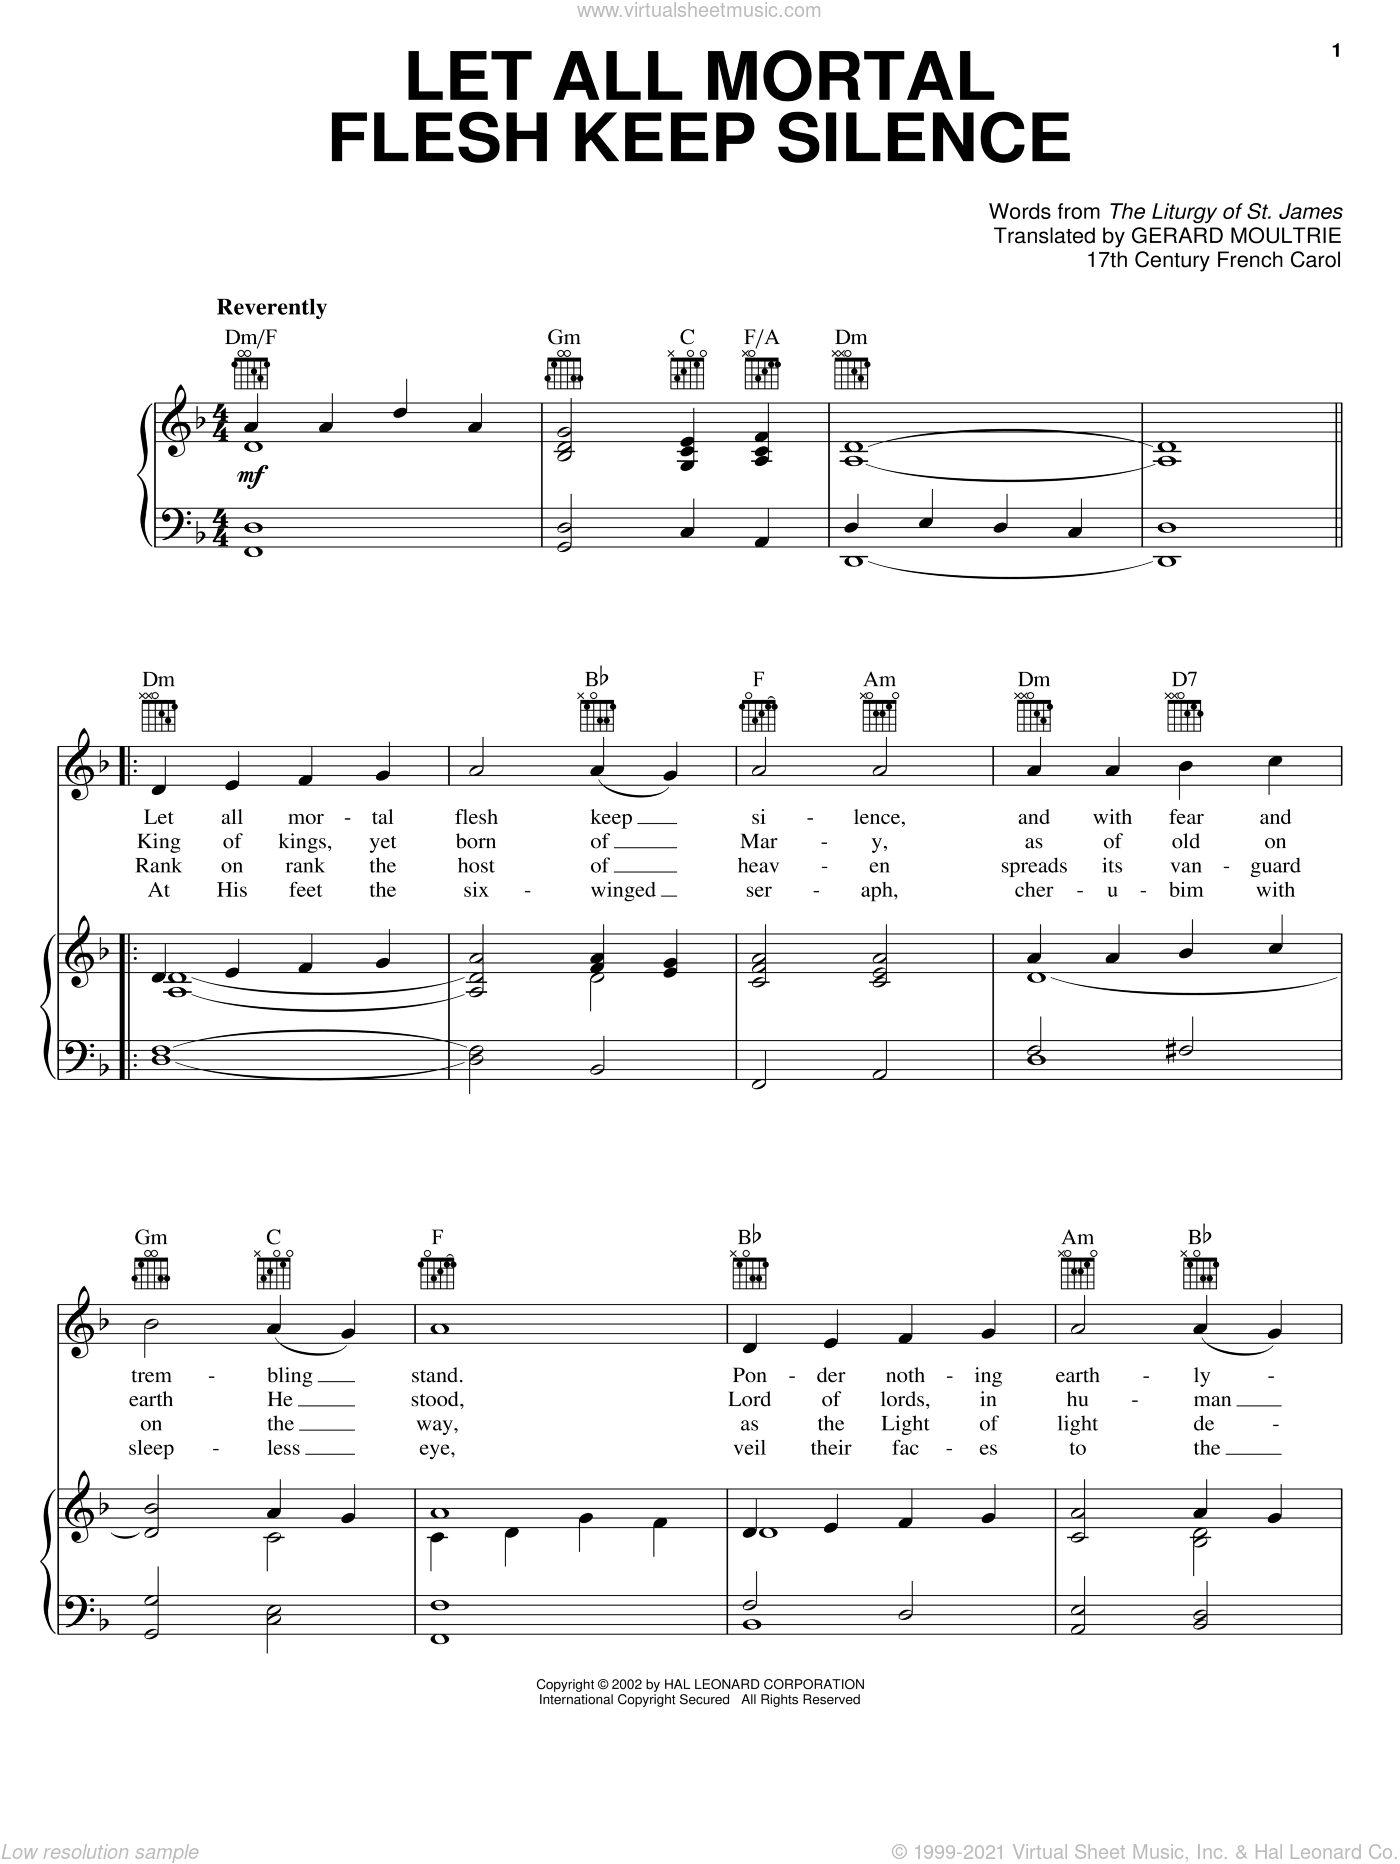 Let All Mortal Flesh Keep Silence sheet music for voice, piano or guitar